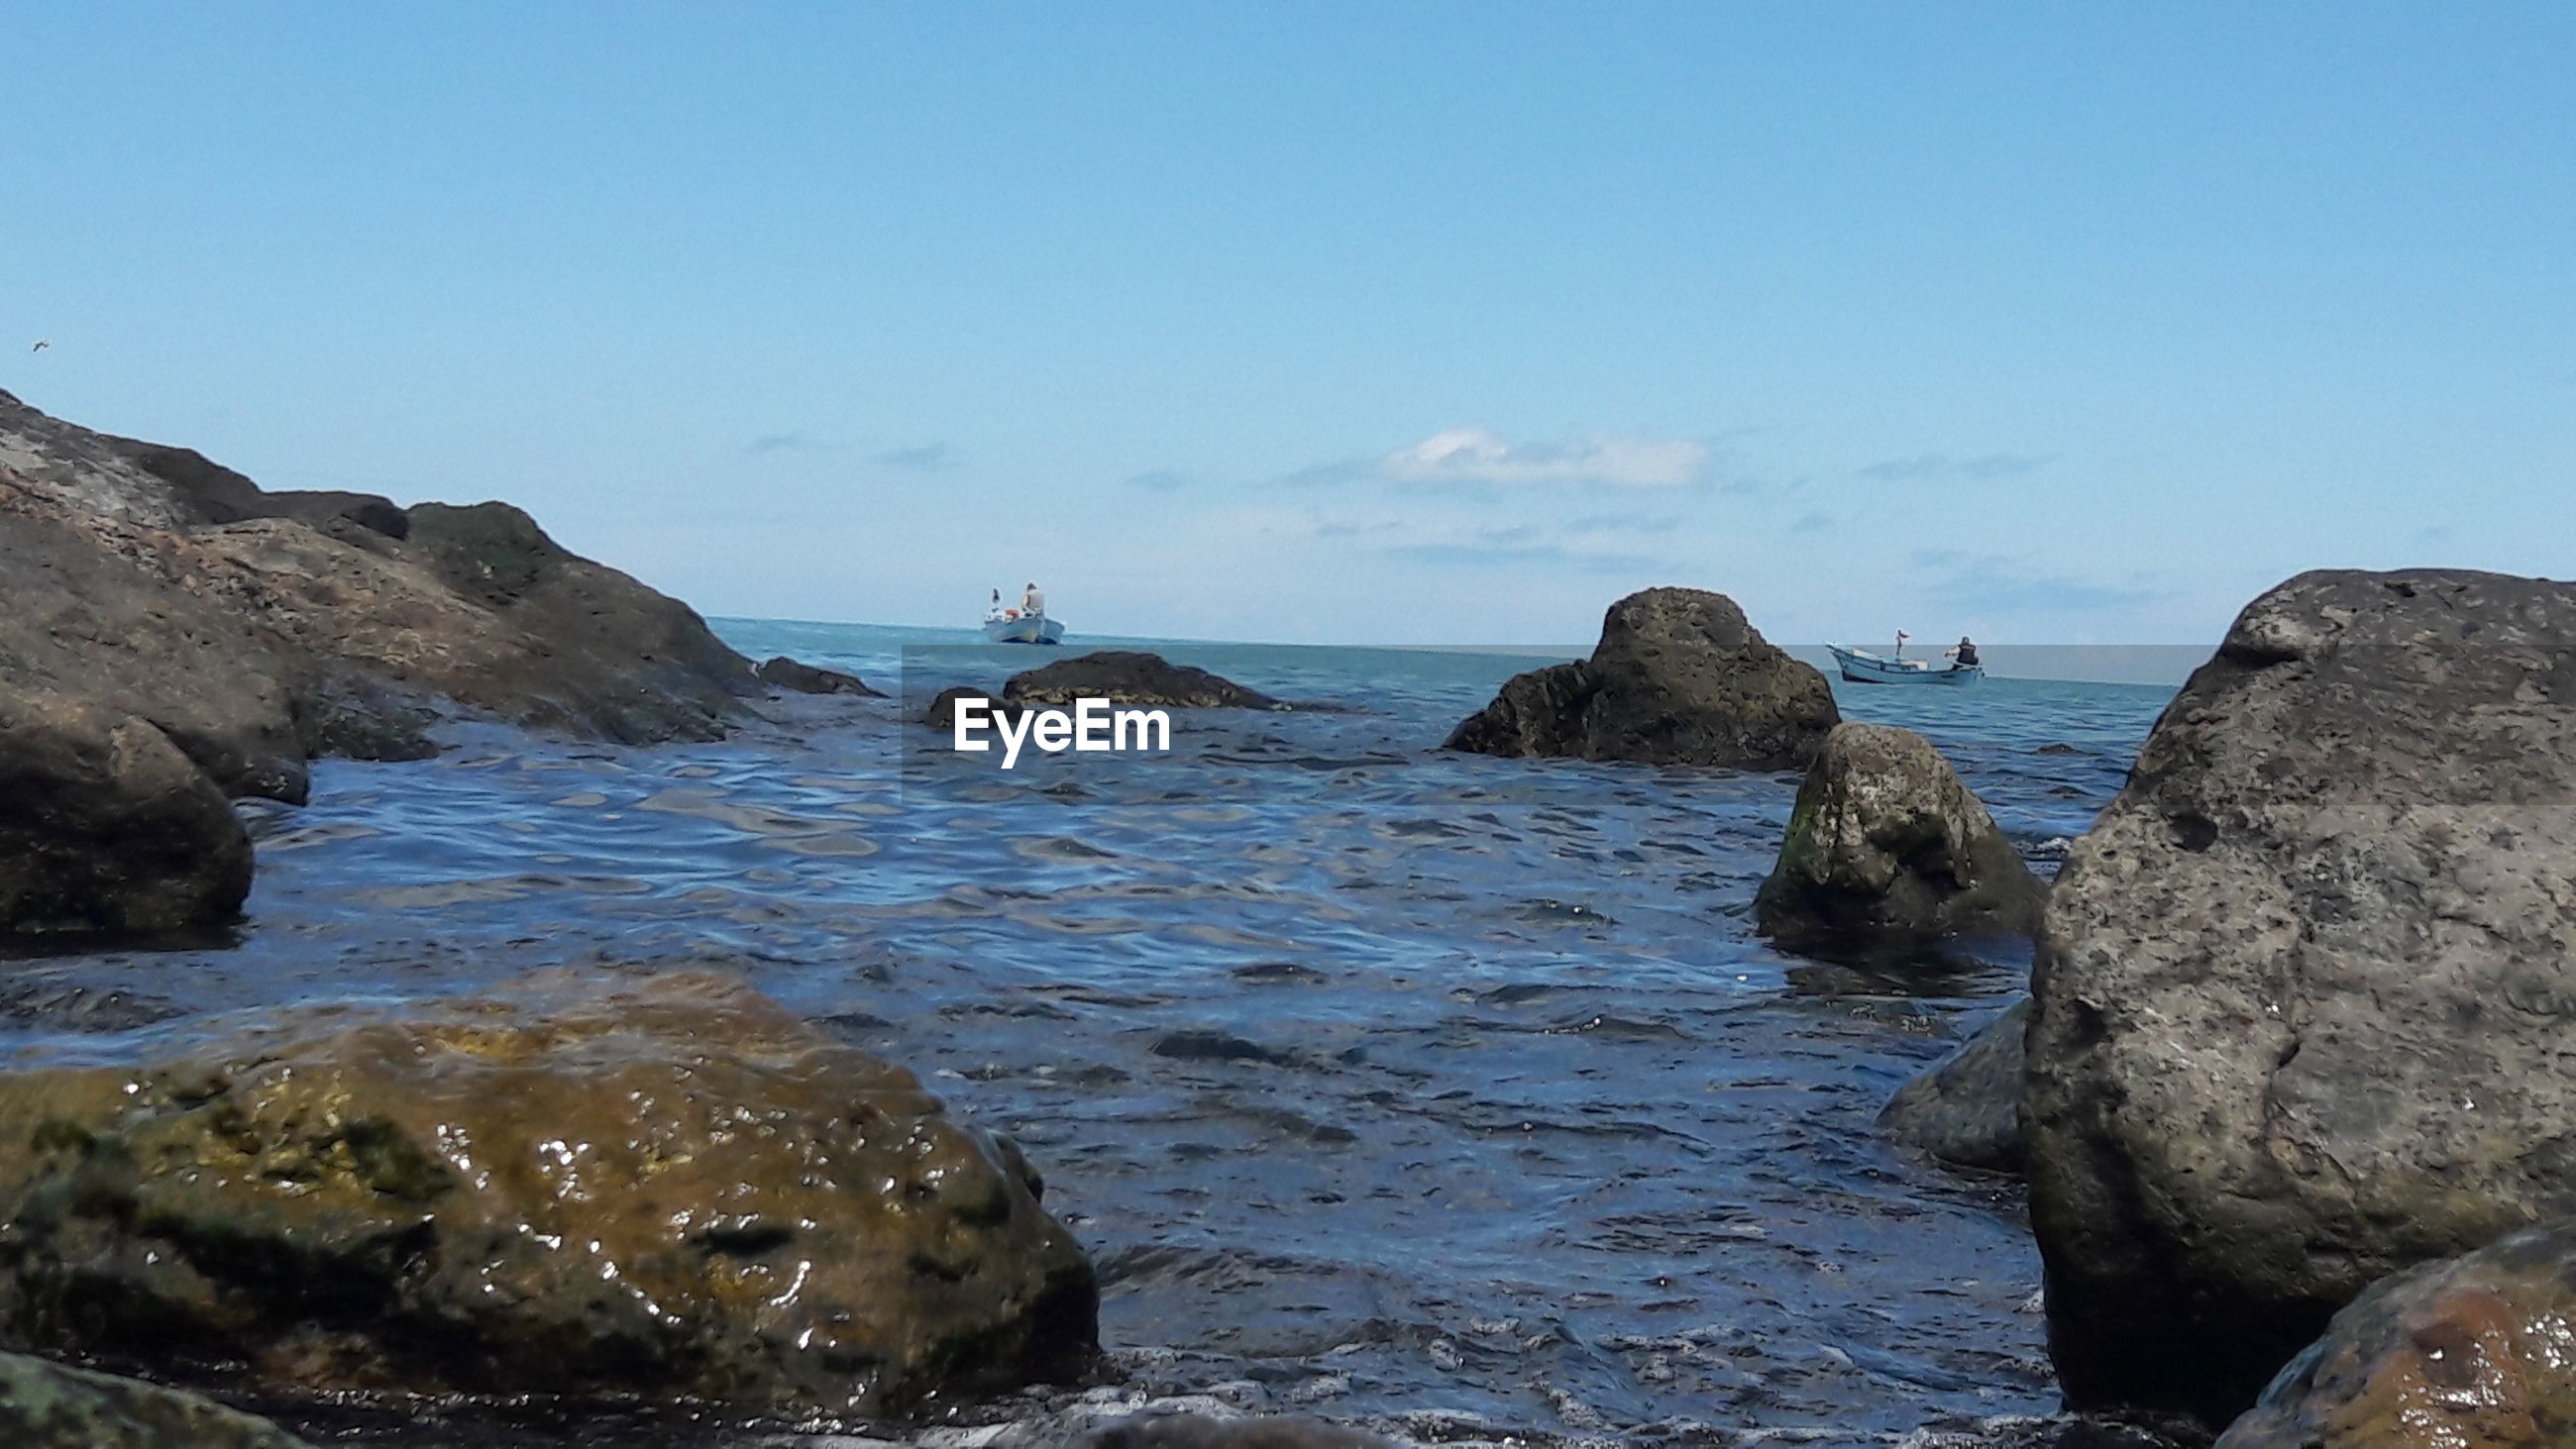 sea, rock - object, nature, water, beauty in nature, sky, scenics, outdoors, tranquility, no people, blue, day, clear sky, horizon over water